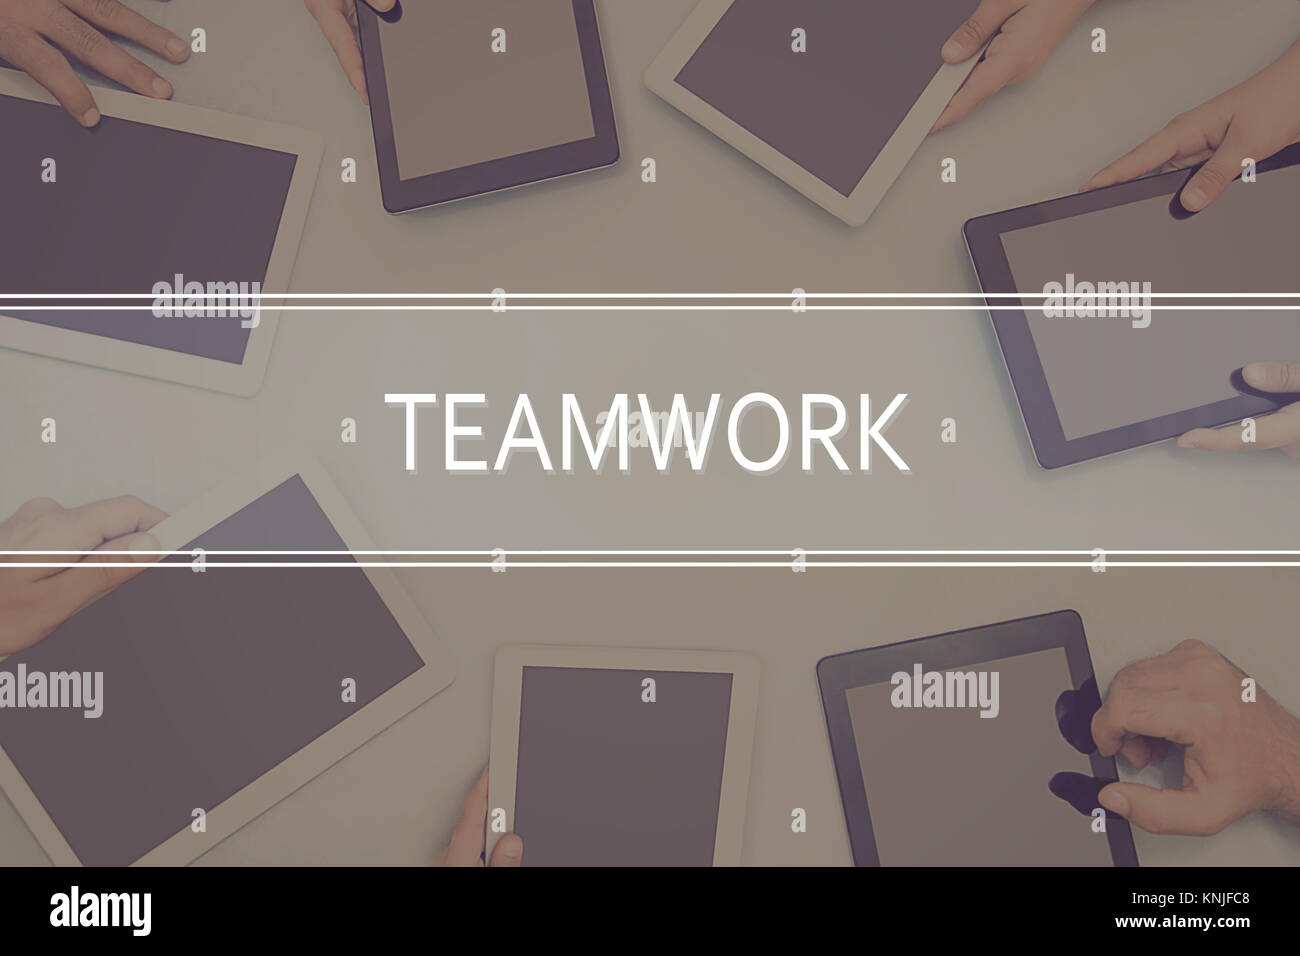 TEAMWORK CONCEPT Business Concept. - Stock Image